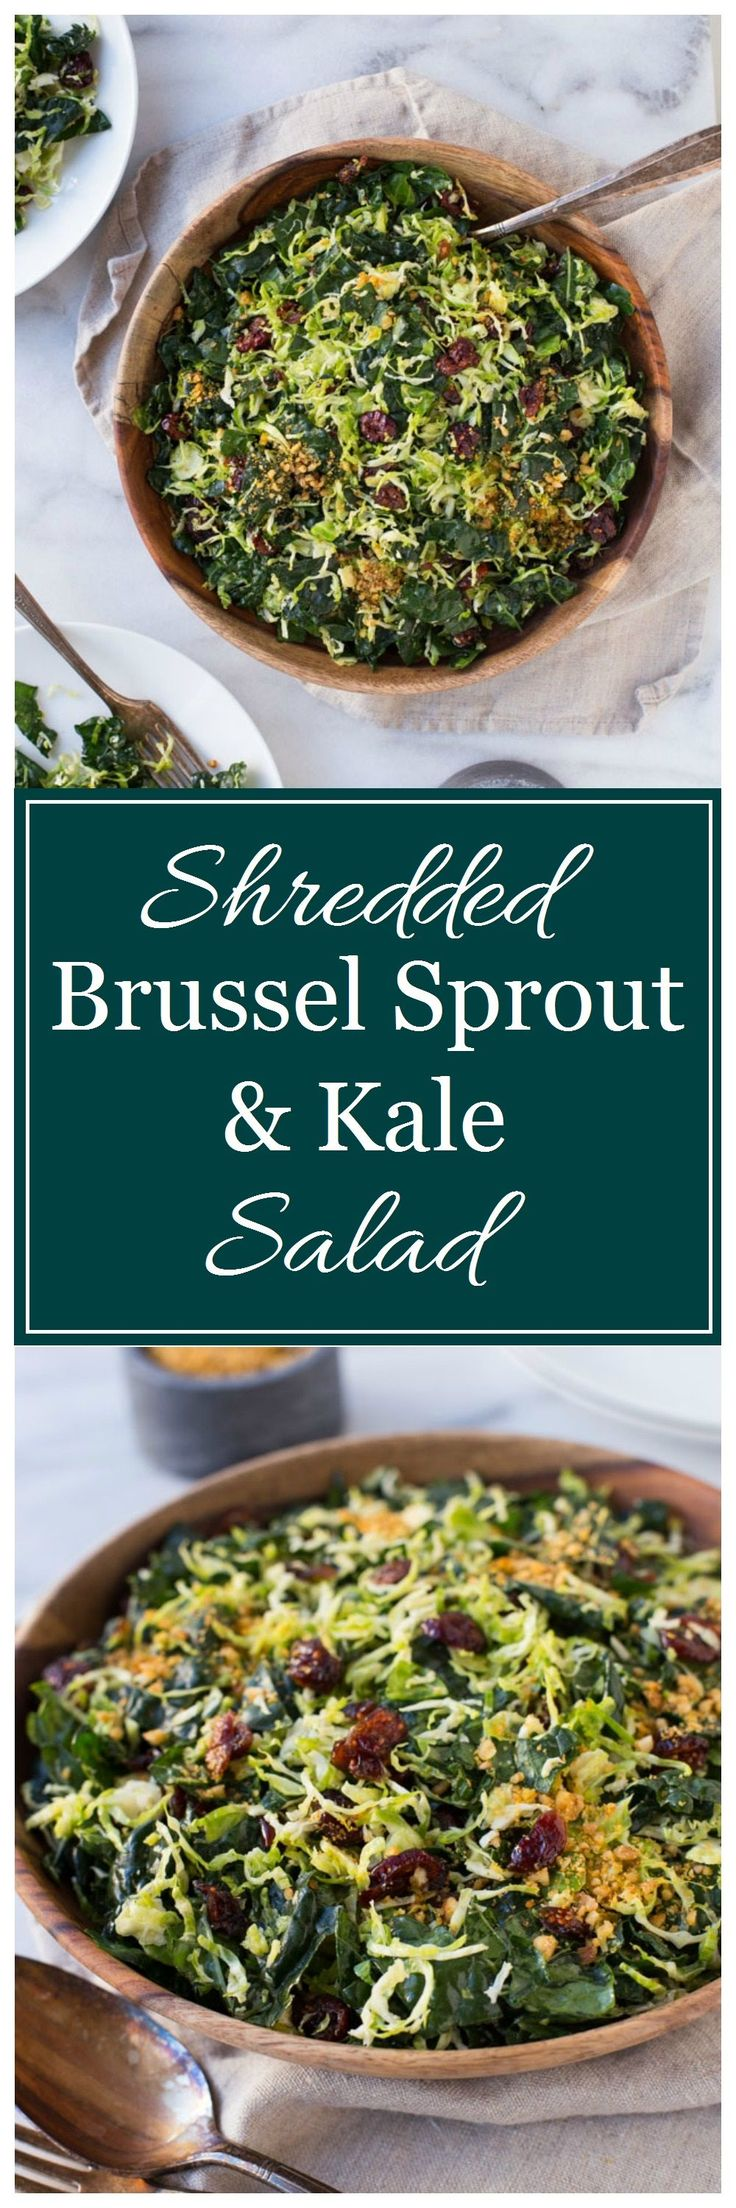 Shredded Brussel Sprout & Kale Salad with Maple Pecan Parmesan- perfect for Thanksgiving or to make for healthy lunches during the week! (vegan, paleo + gluten-free)